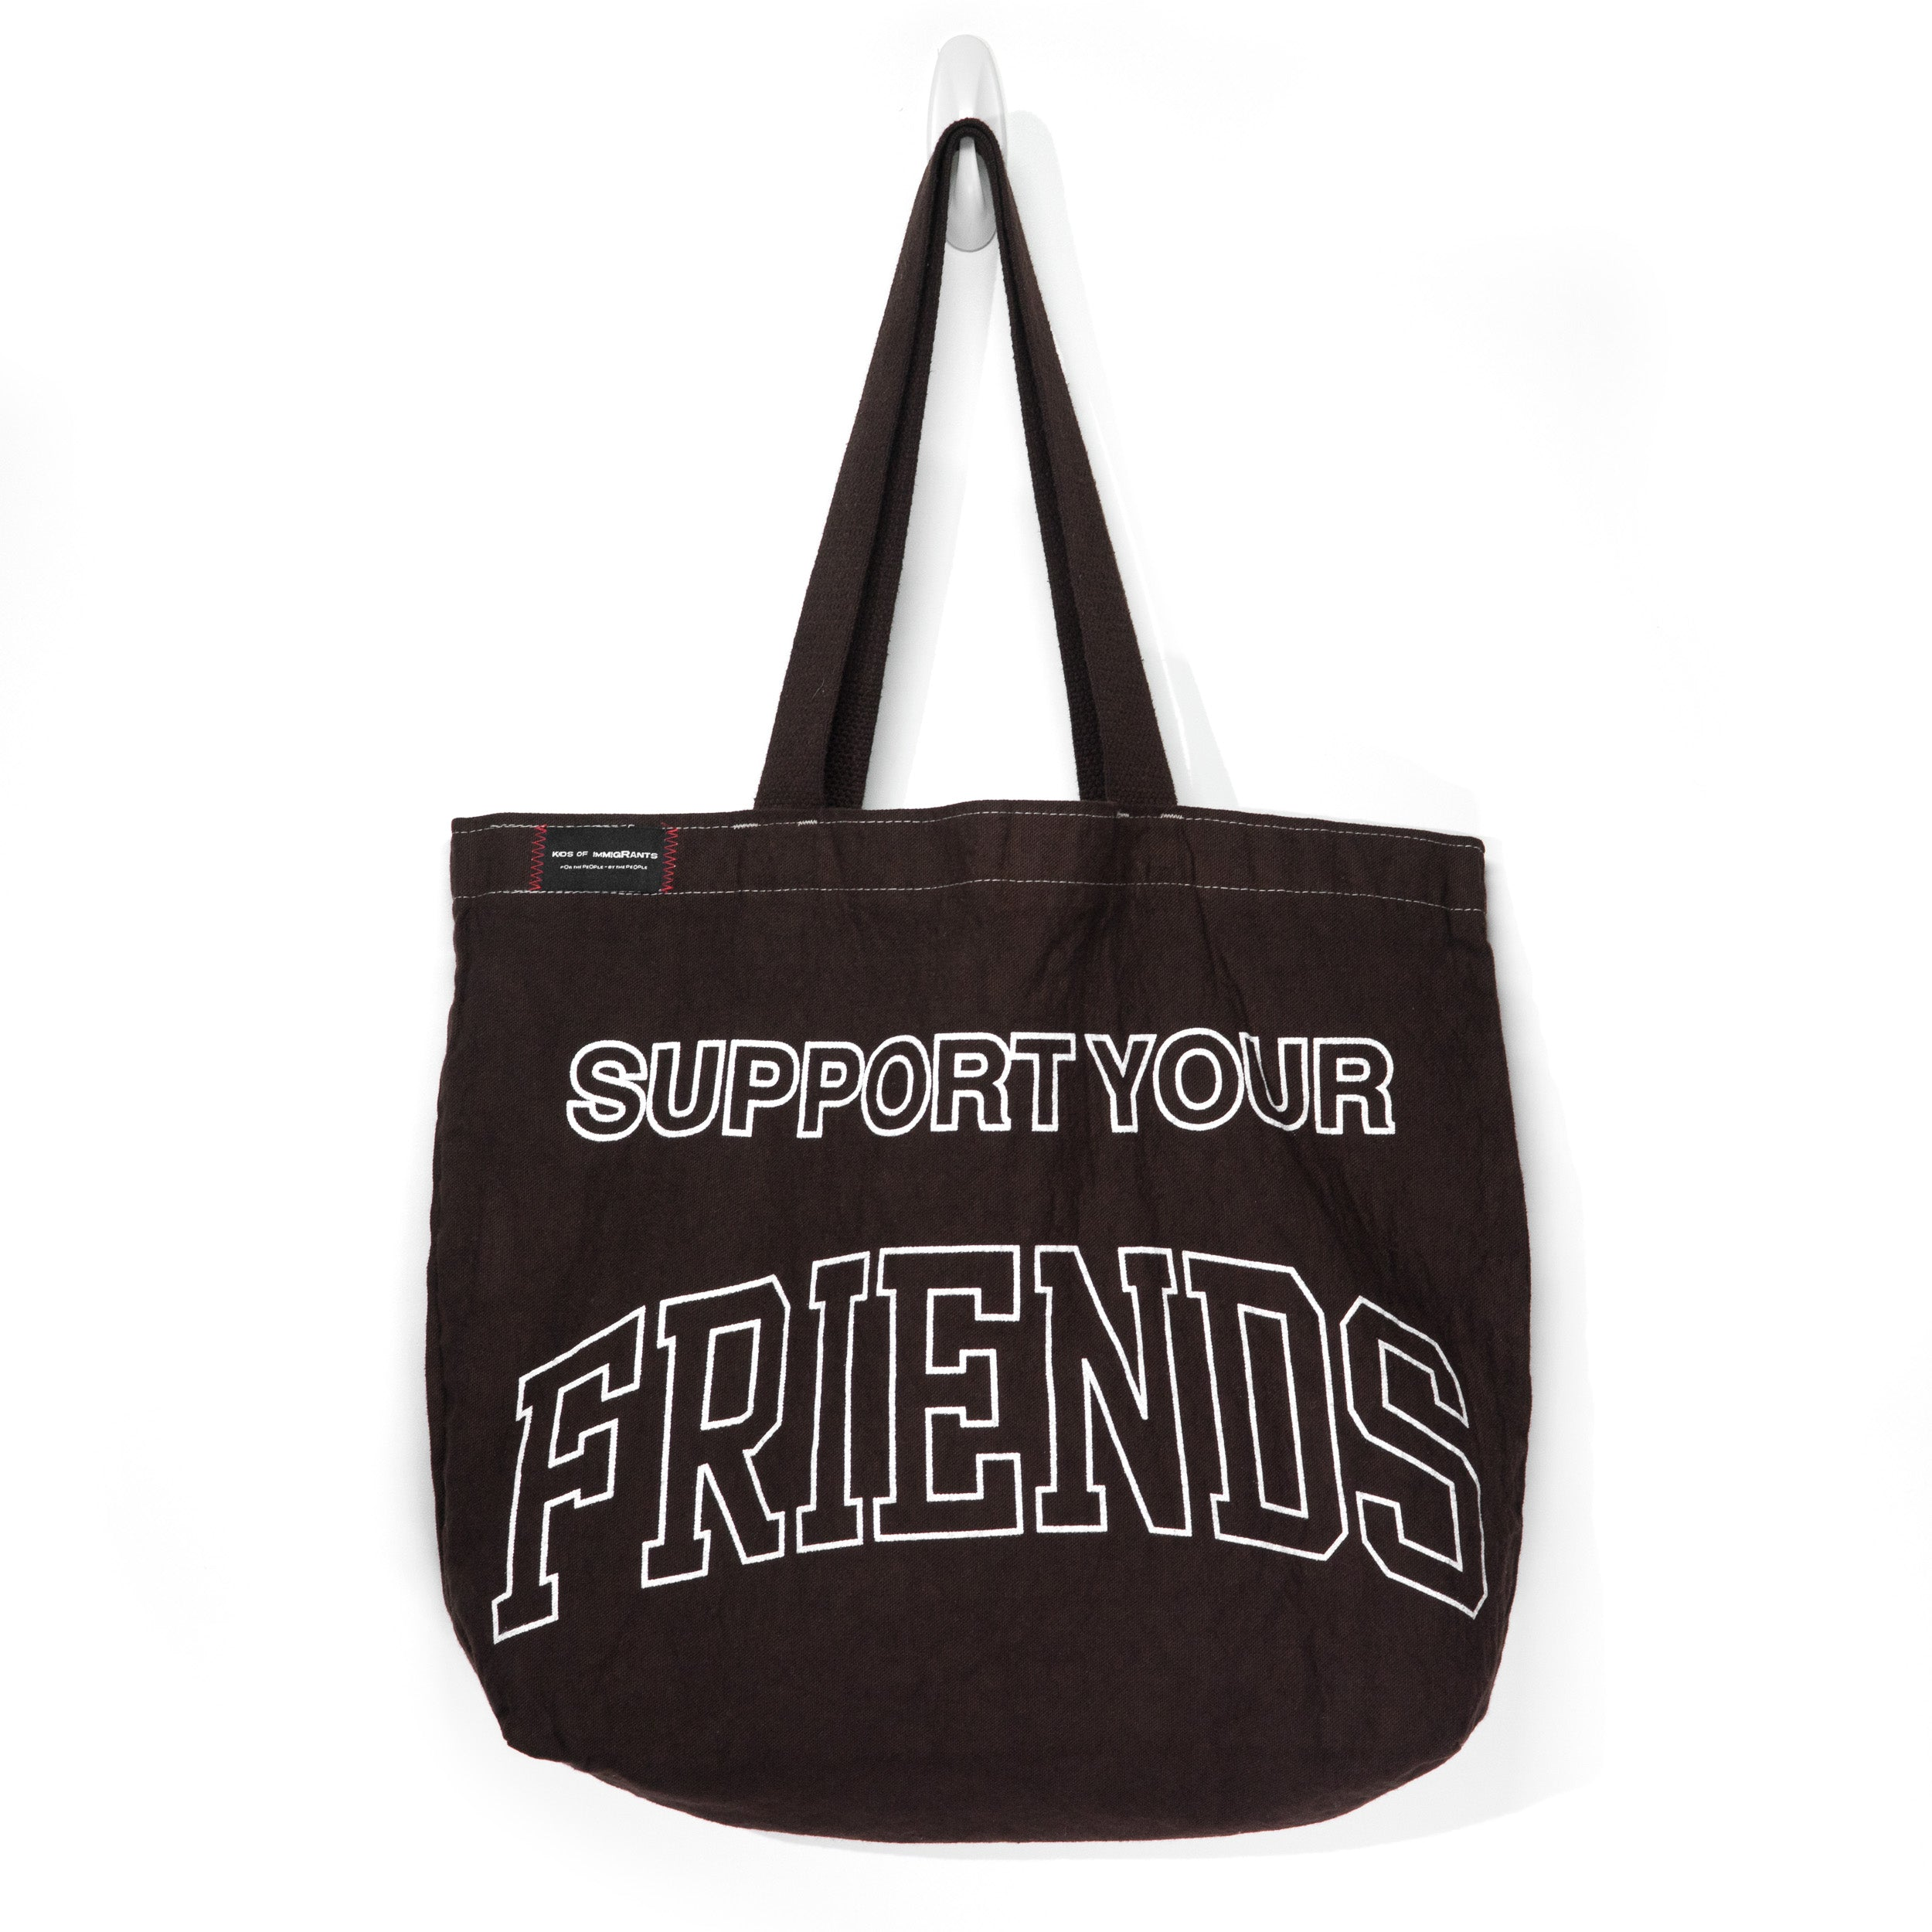 SUPPORT YOUR FRIENDS TOTE BAG - CHOCOLATE